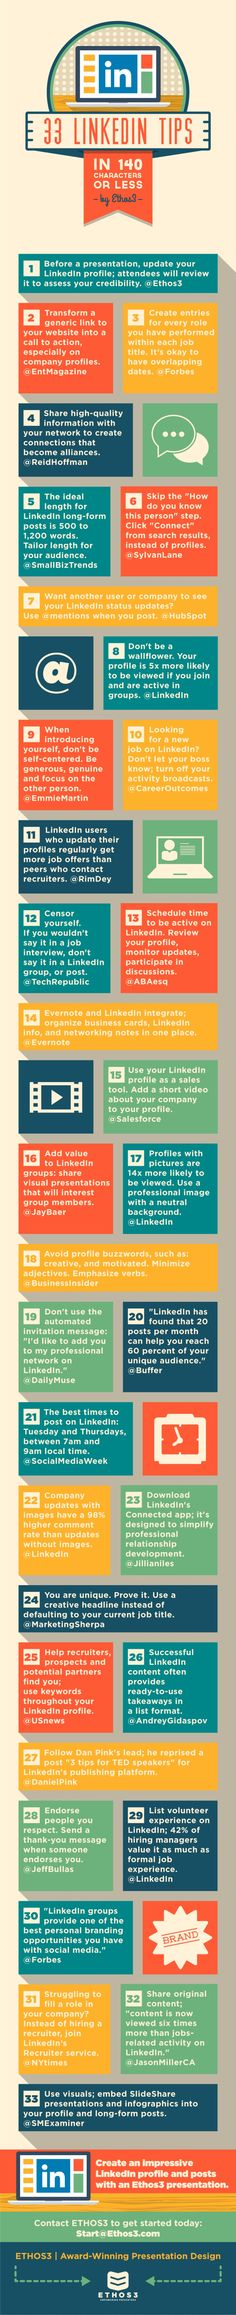 33 Tweetable LinkedIn Tips [Infographic], via @HubSpot | via #BornToBeSocial - Pinterest Marketing